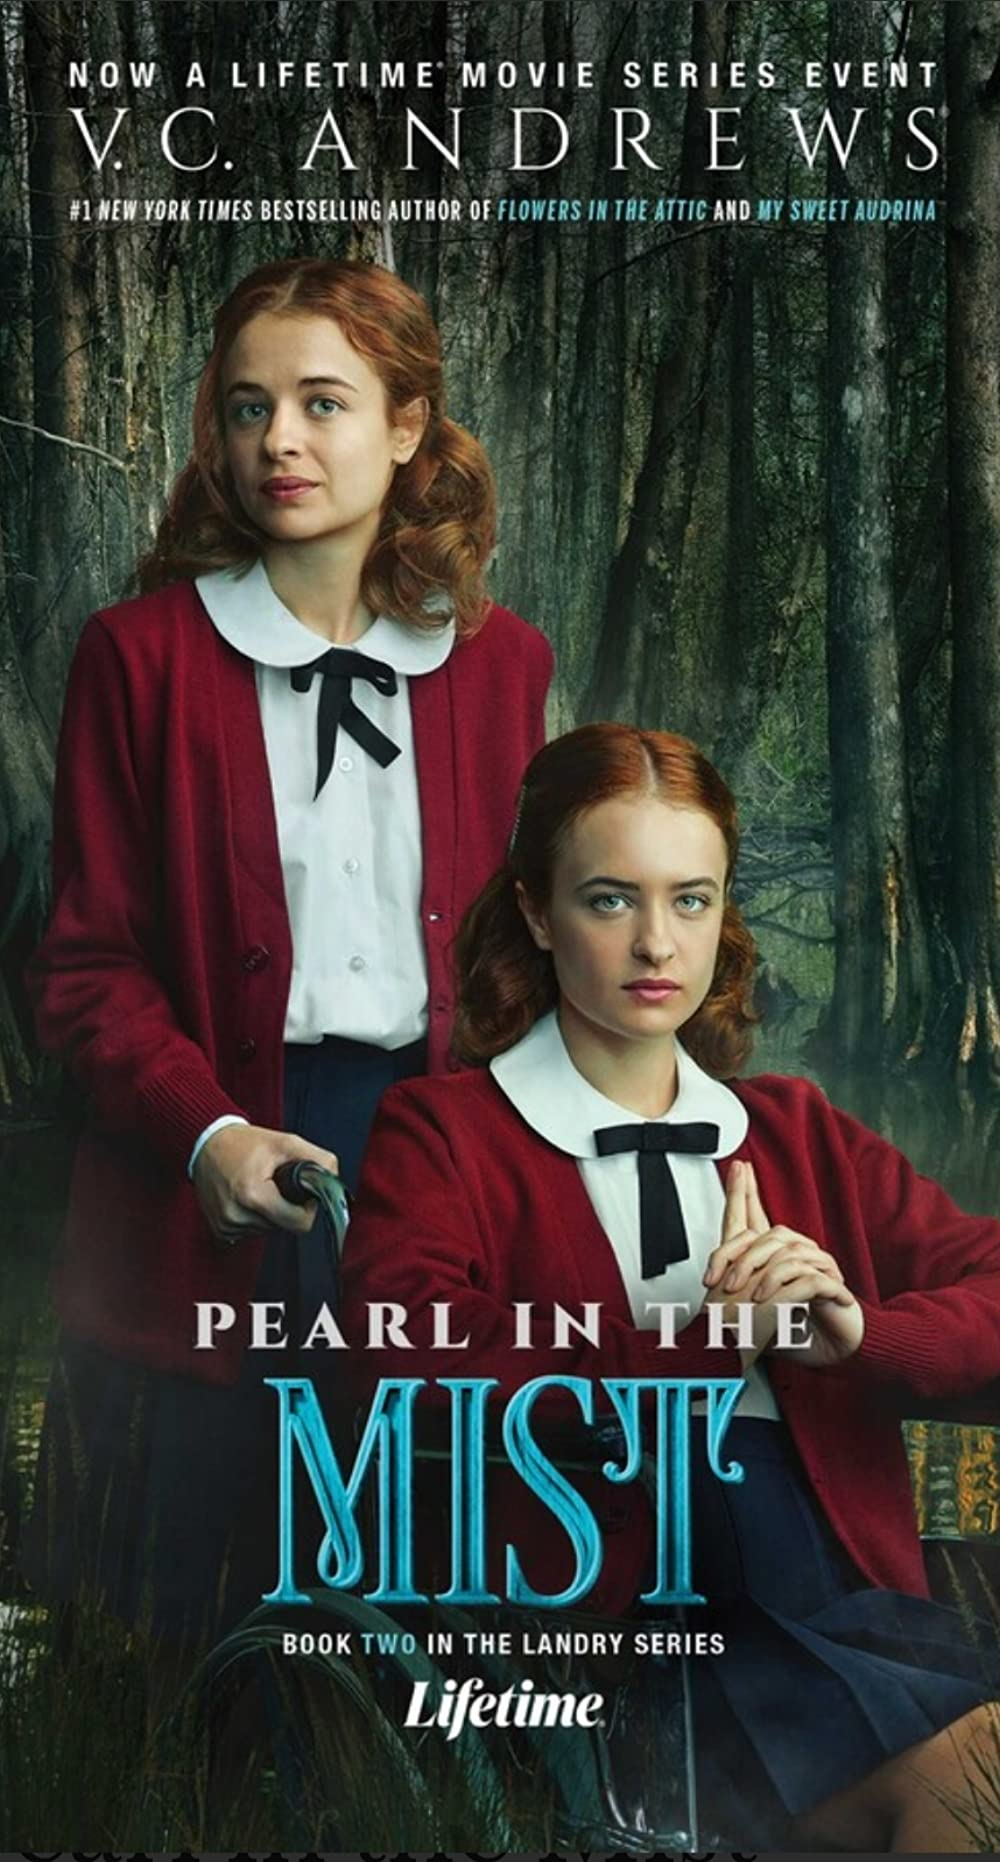 Watch V.C. Andrews' Pearl in the Mist Online